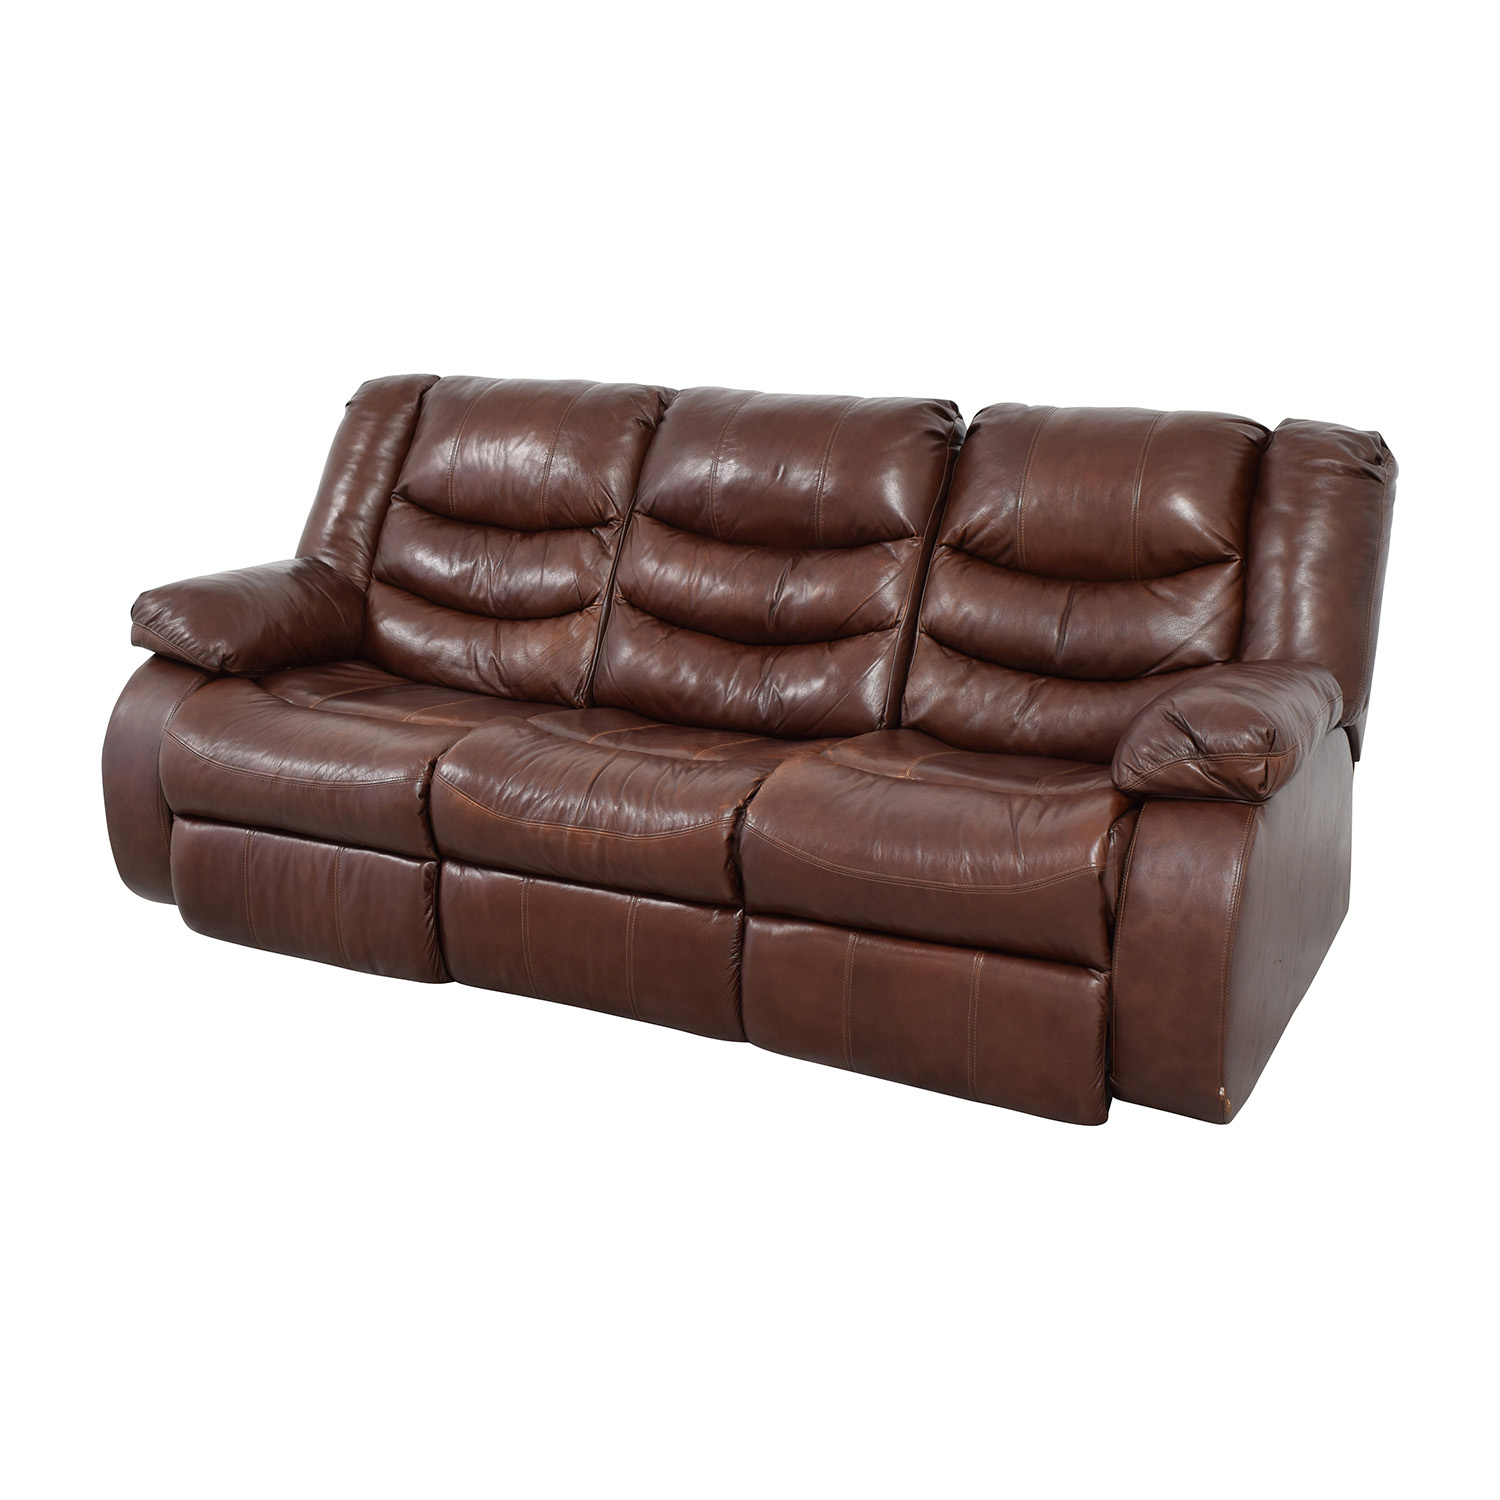 Loveseat Sofa Bed Ashley Furniture: Ashley's Furniture Ashley Furniture Large Brown